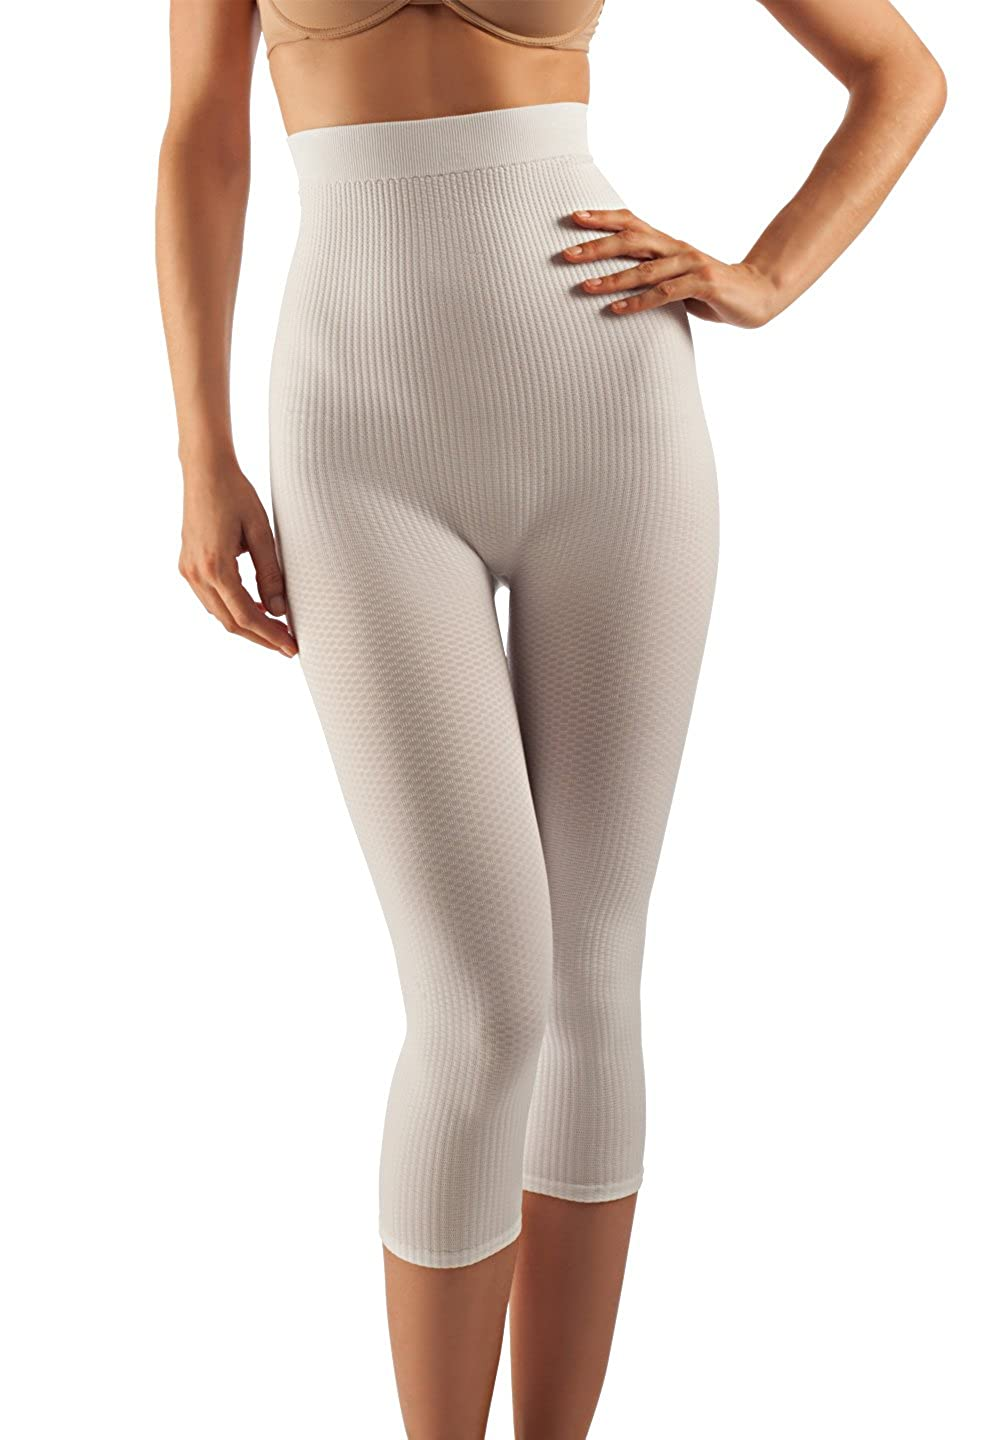 Farmacell 123 Women's high-Waisted Anti-Cellulite micromassage Capri Leggings Calze G.T. S.r.l.